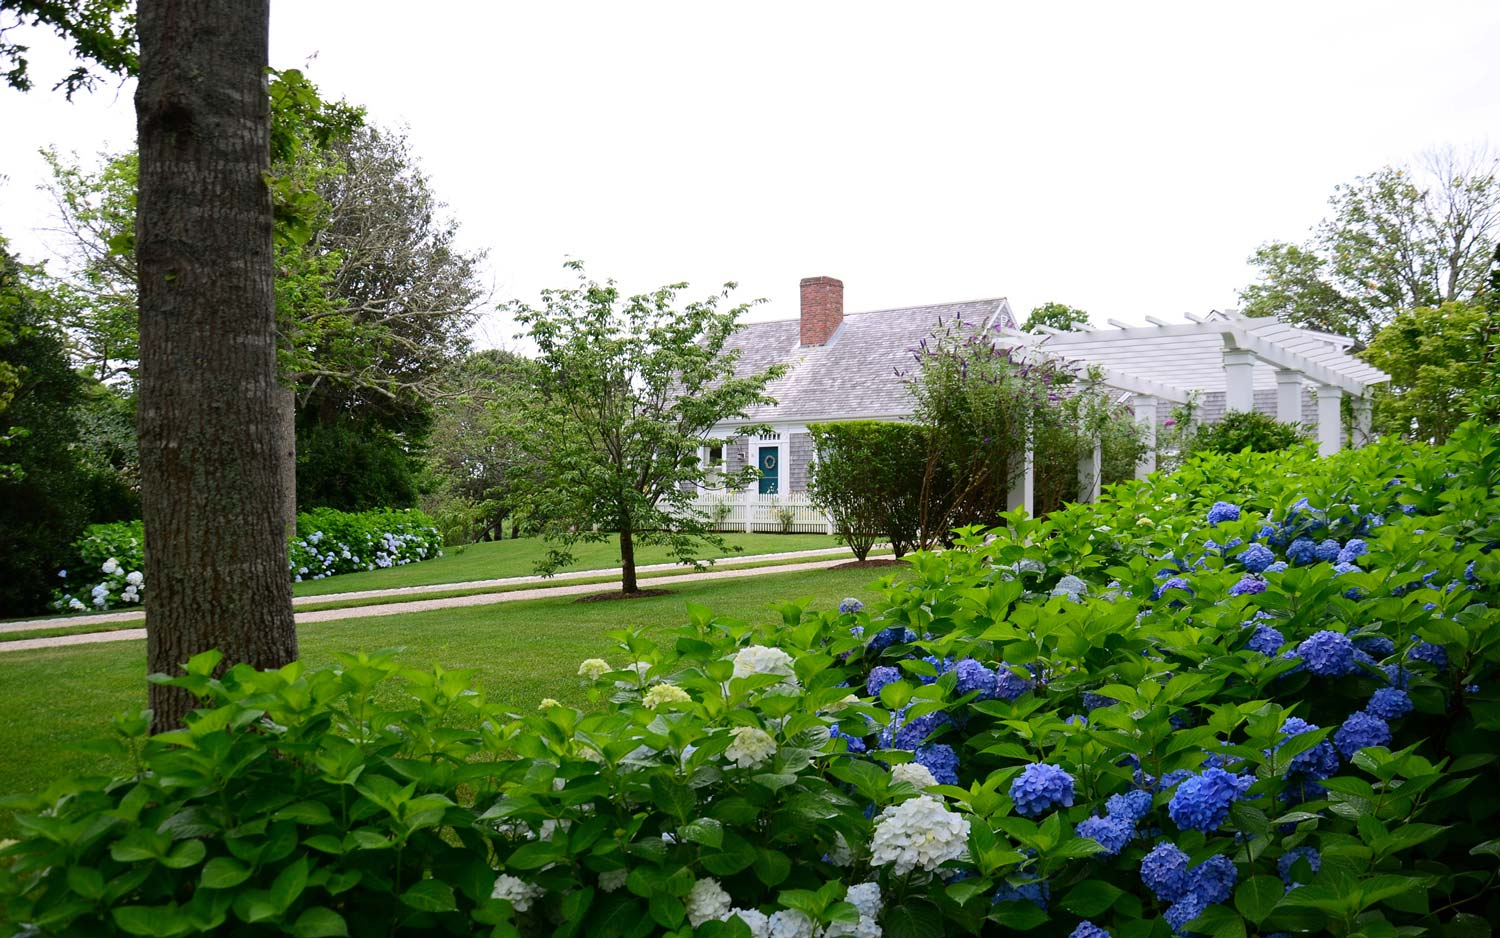 Located in Chatham, MA, this Cape Cod cottage has Endless Summer Hydrangea and a perennial garden that borders the pea stone driveway.